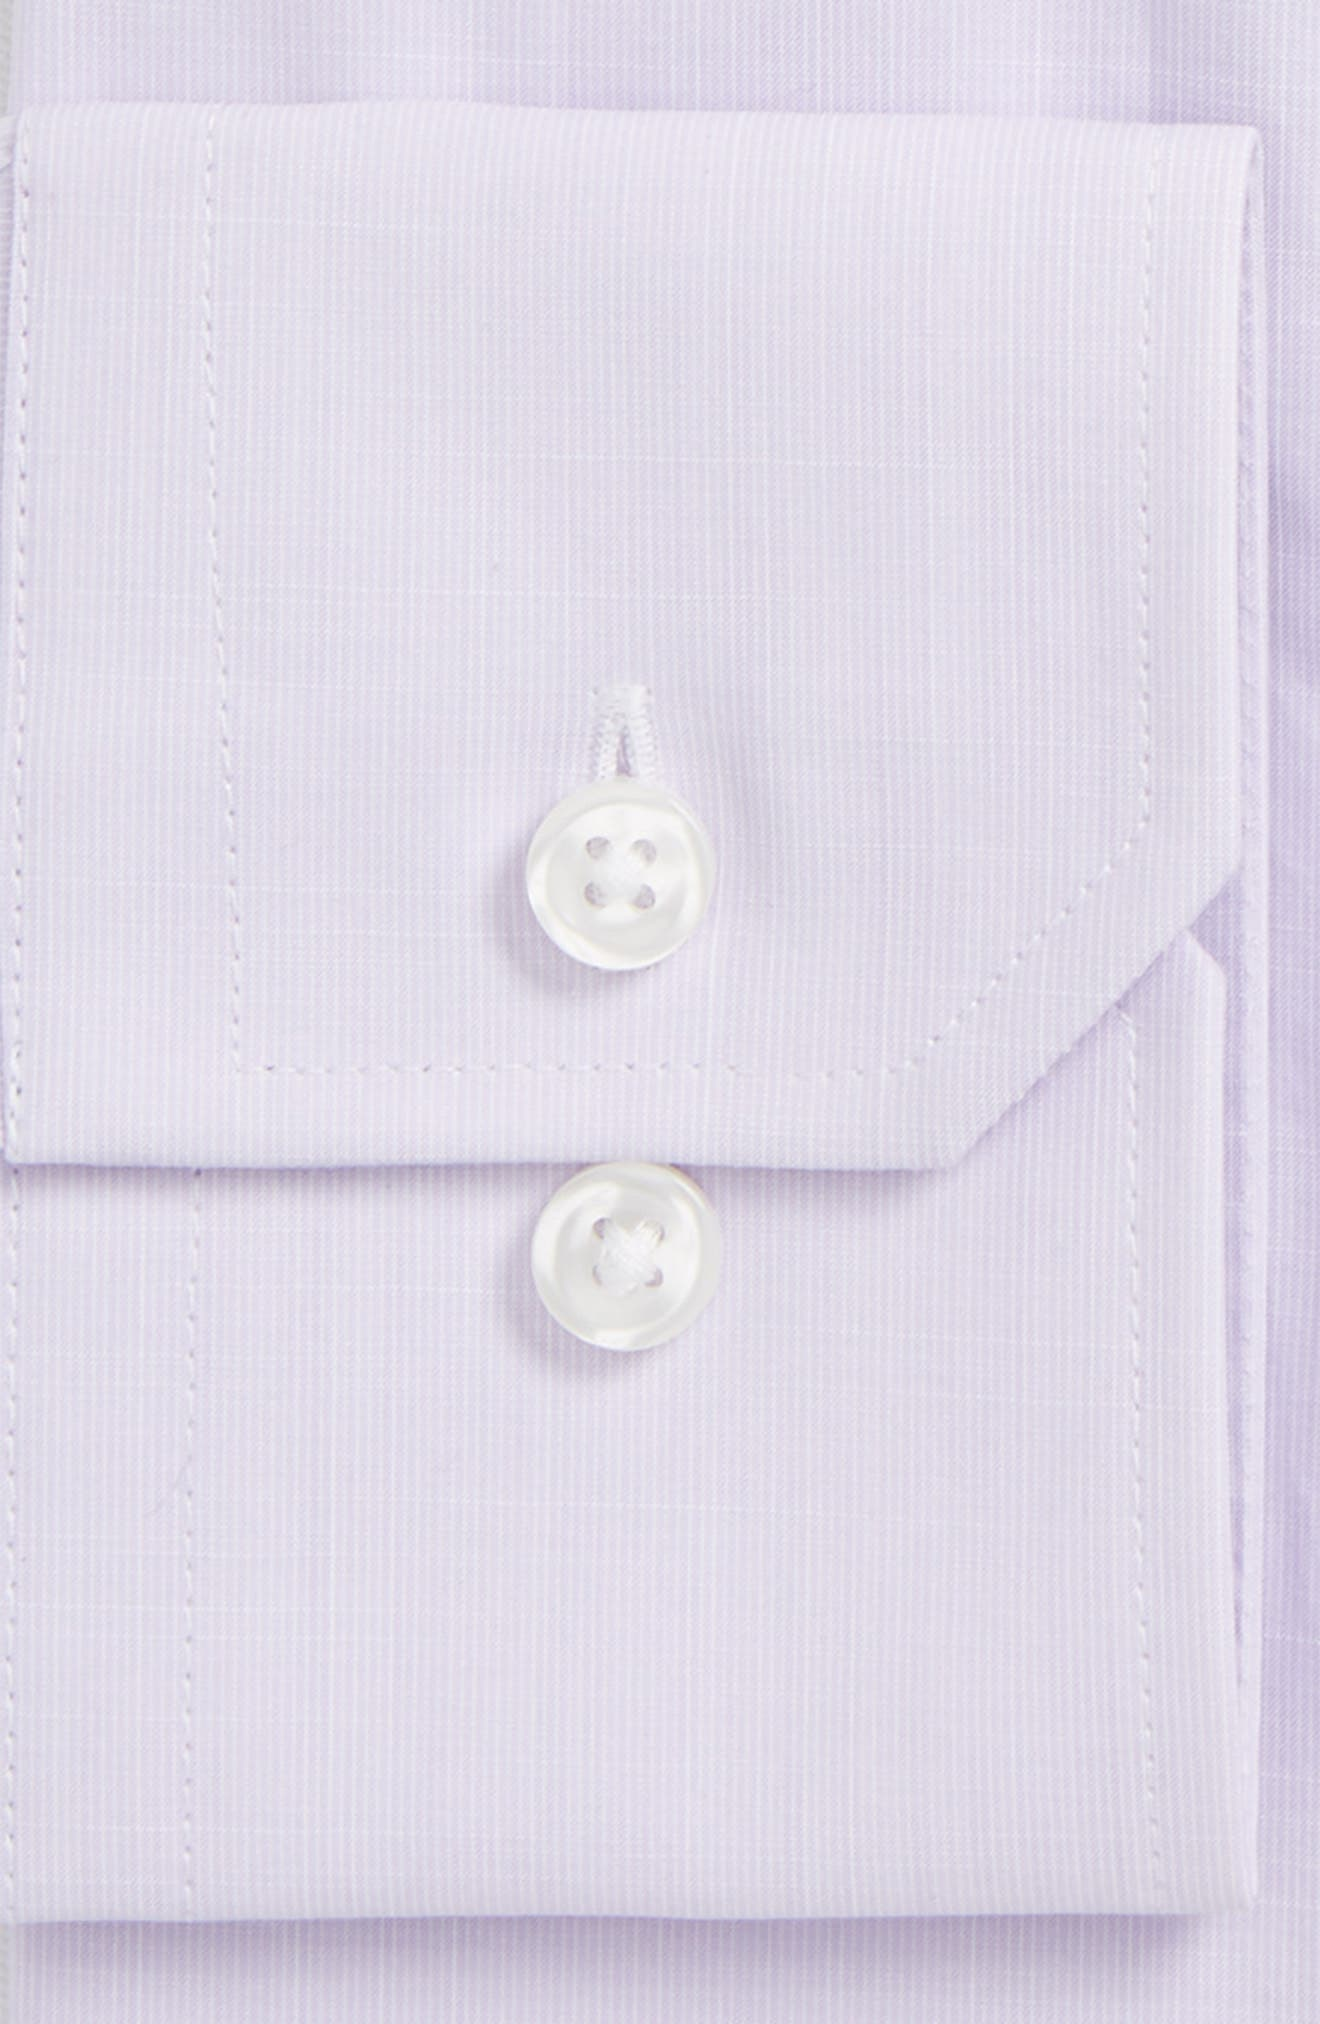 Espirit Trim Fit Solid Dress Shirt,                             Alternate thumbnail 2, color,                             530